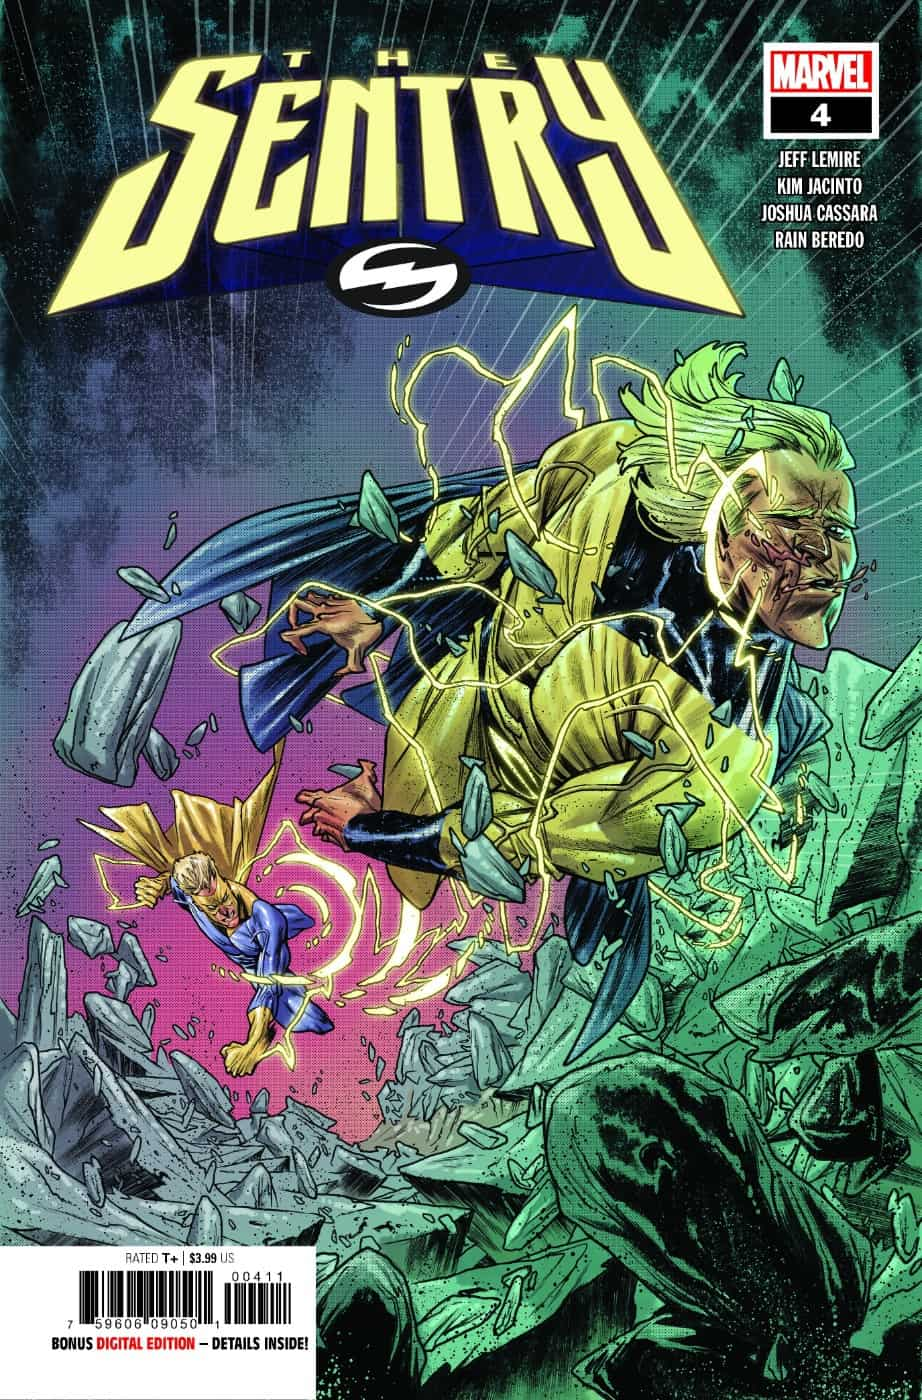 THE SENTRY #4 cover page 1